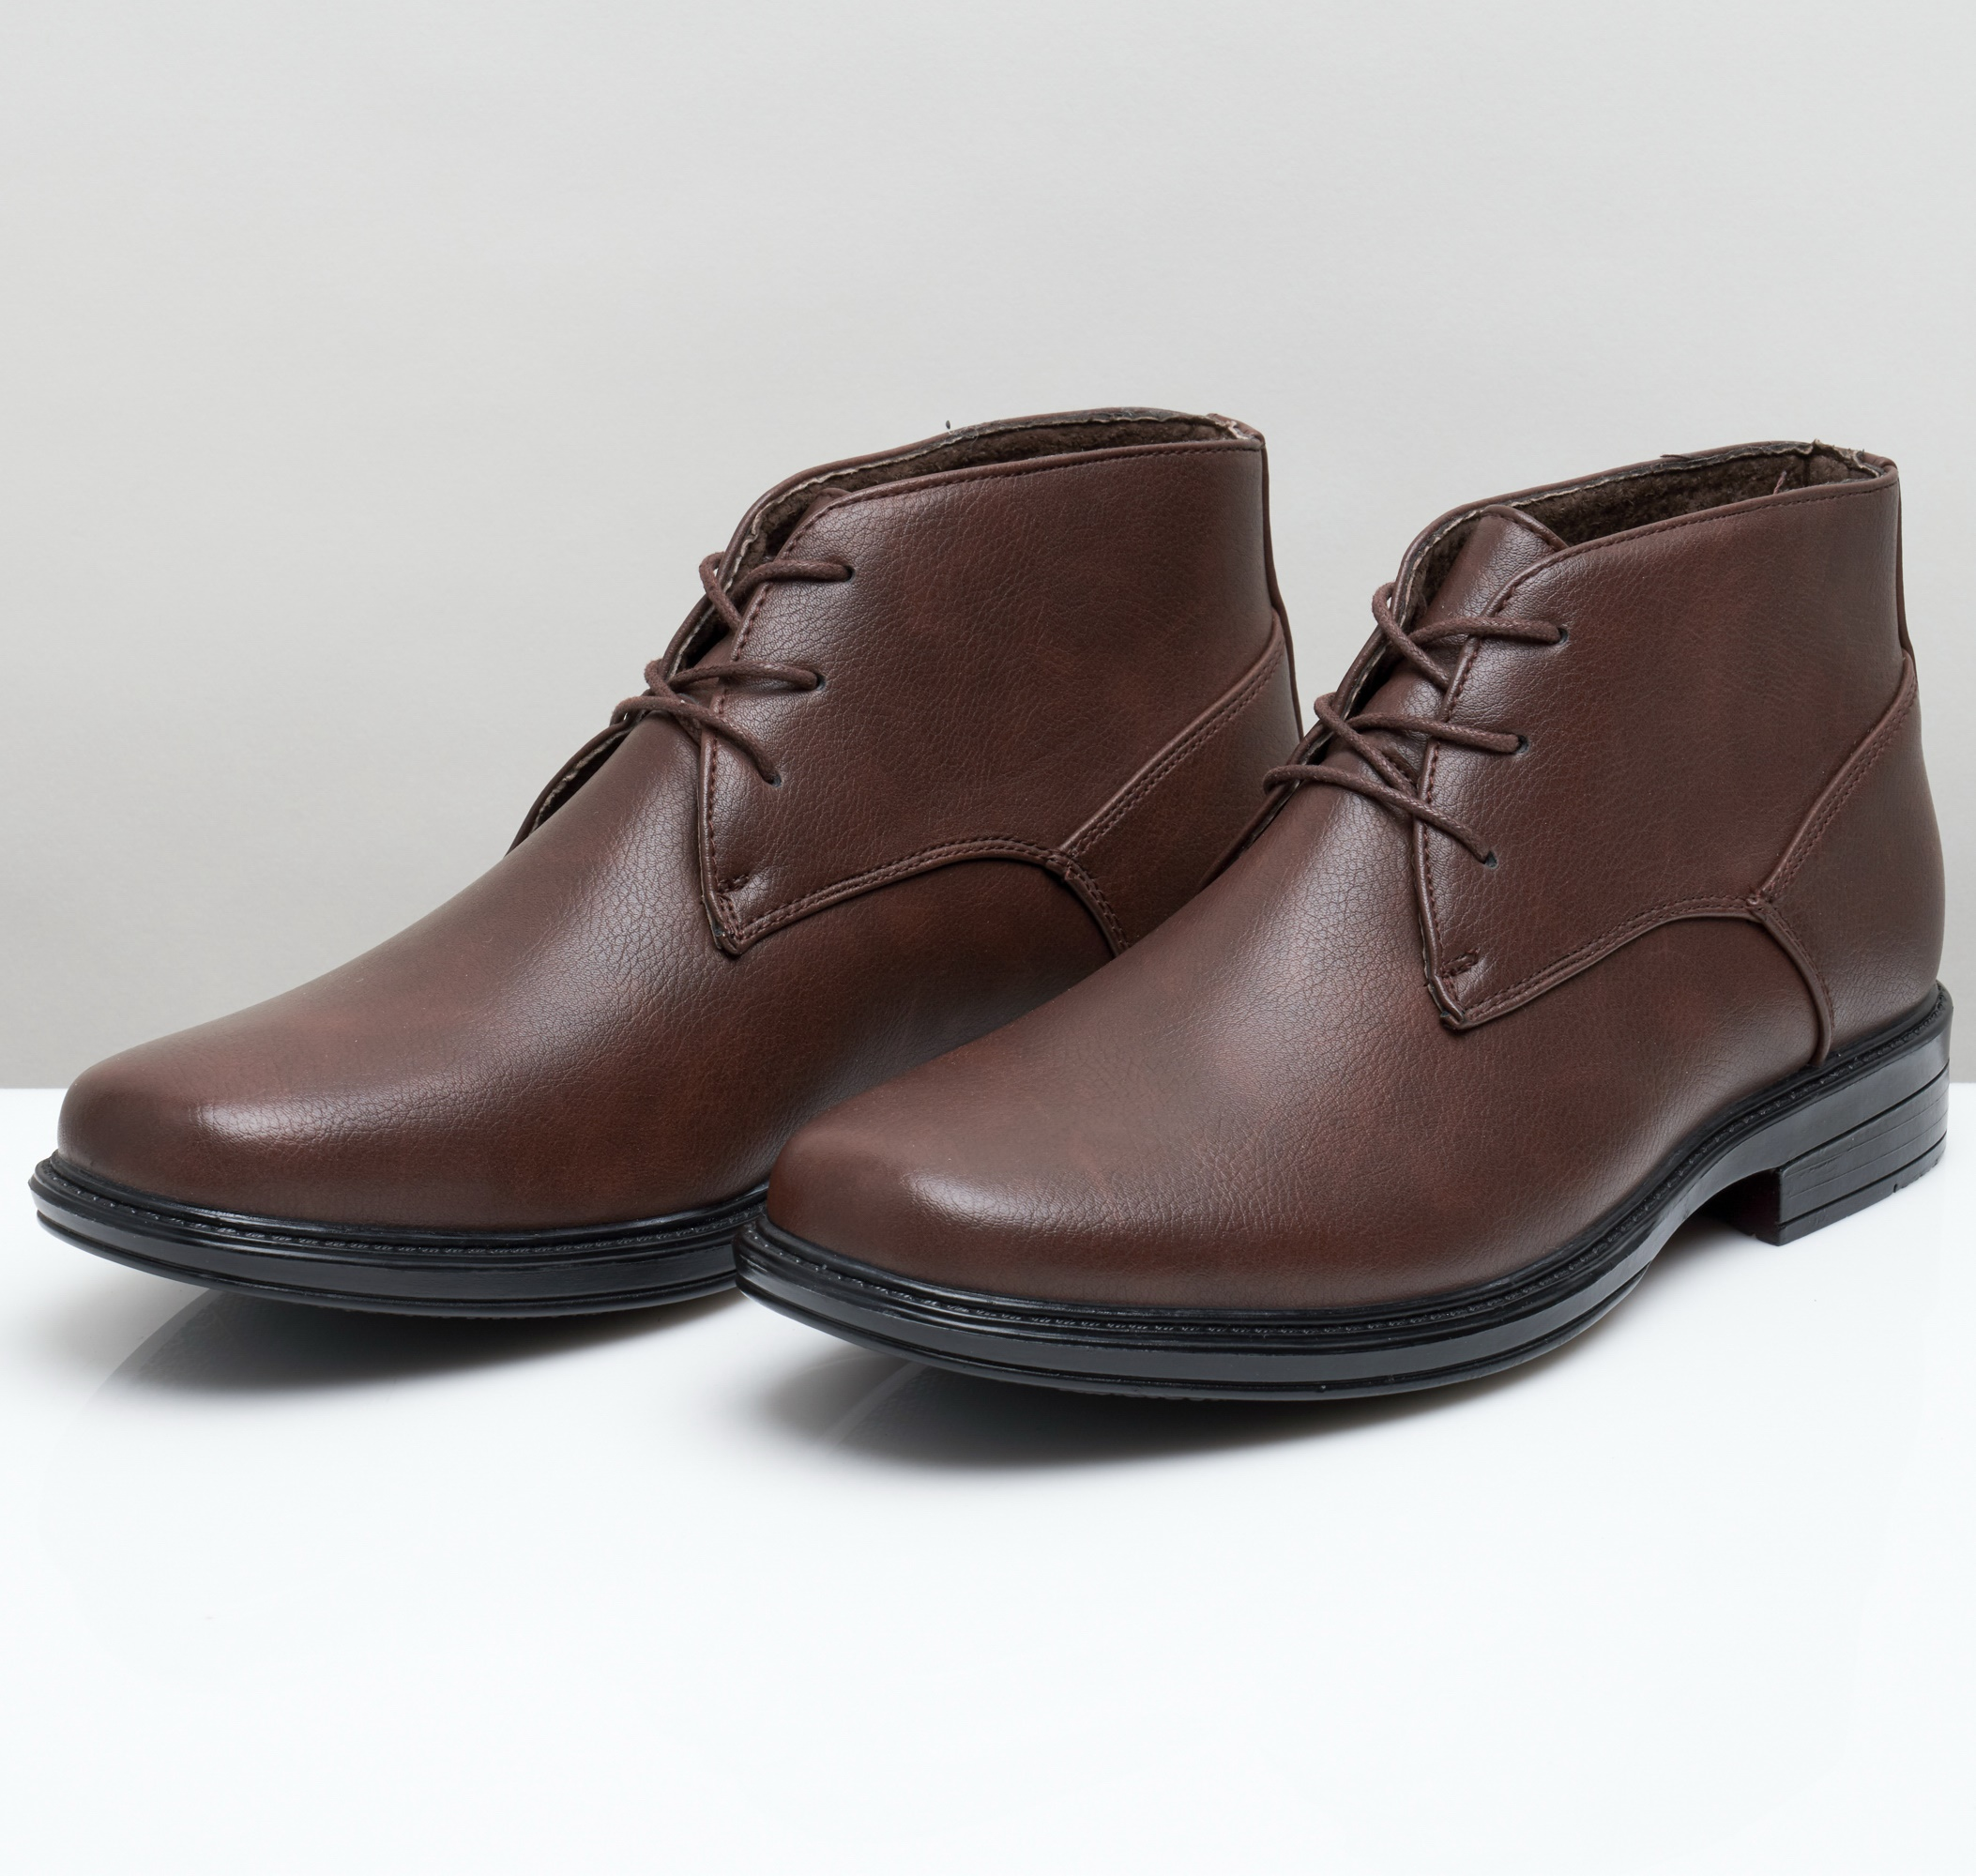 Alpine-Swiss-Mens-Ankle-Boots-Dressy-Casual-Leather-Lined-Dress-Shoes-Lace-up-NW miniature 24